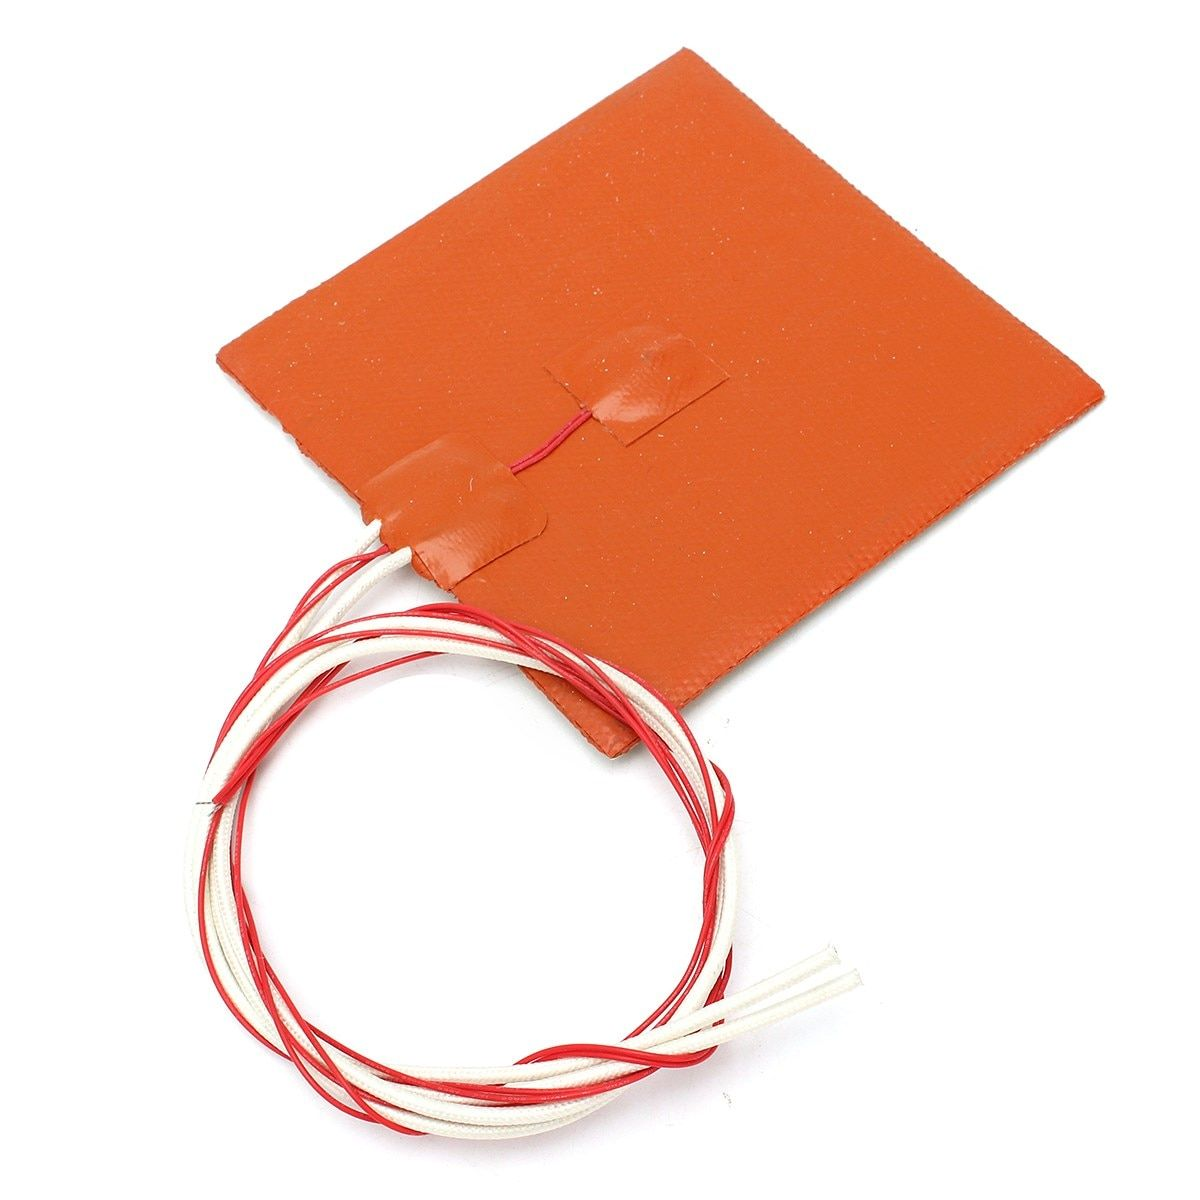 New 12x12cm 120W 12V Silicone Heater Pad For 3D Printer Heated Bed Heating Mat 3D Printer Parts & Accessories